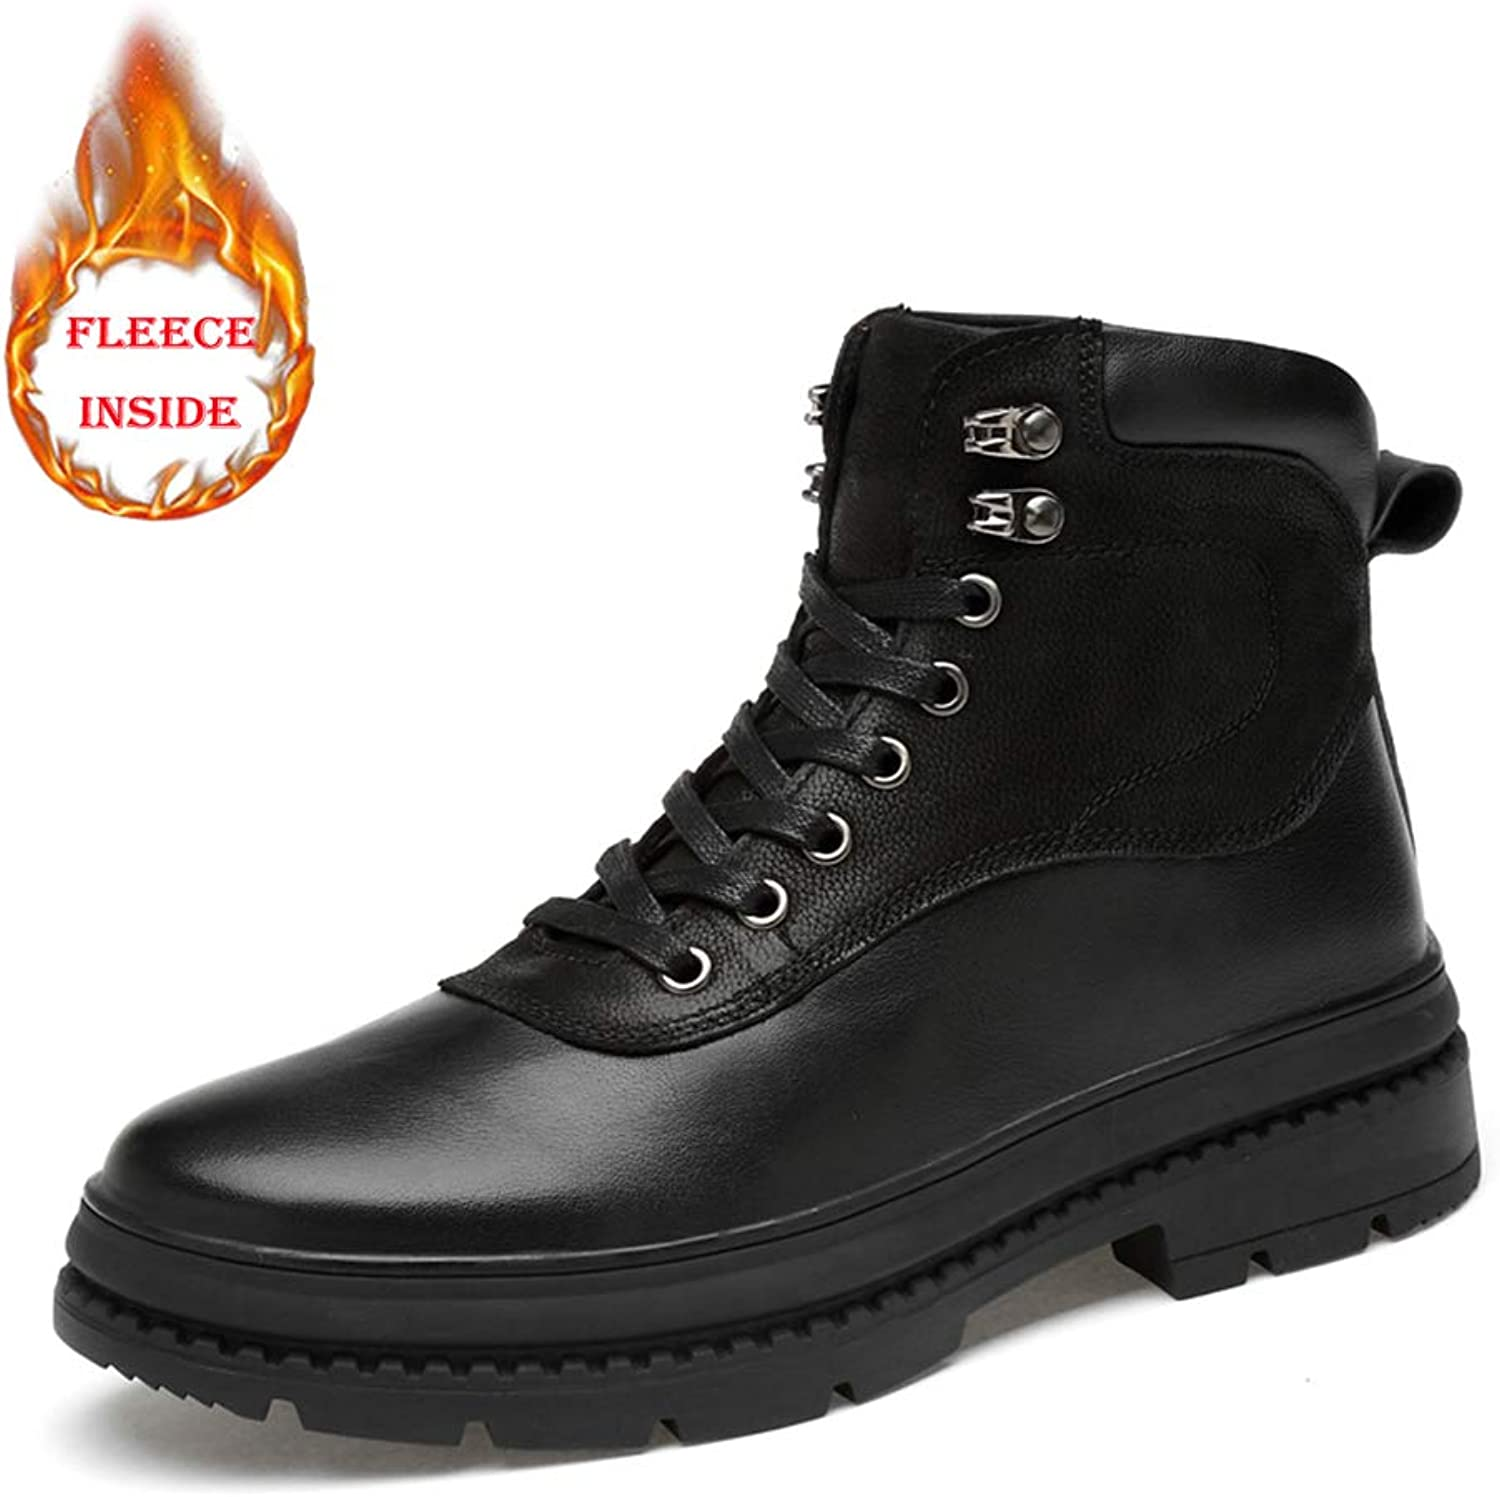 HYF Men's fashion ankle boots leisure classic comfort high top outdoor outsole boots Winter Boots